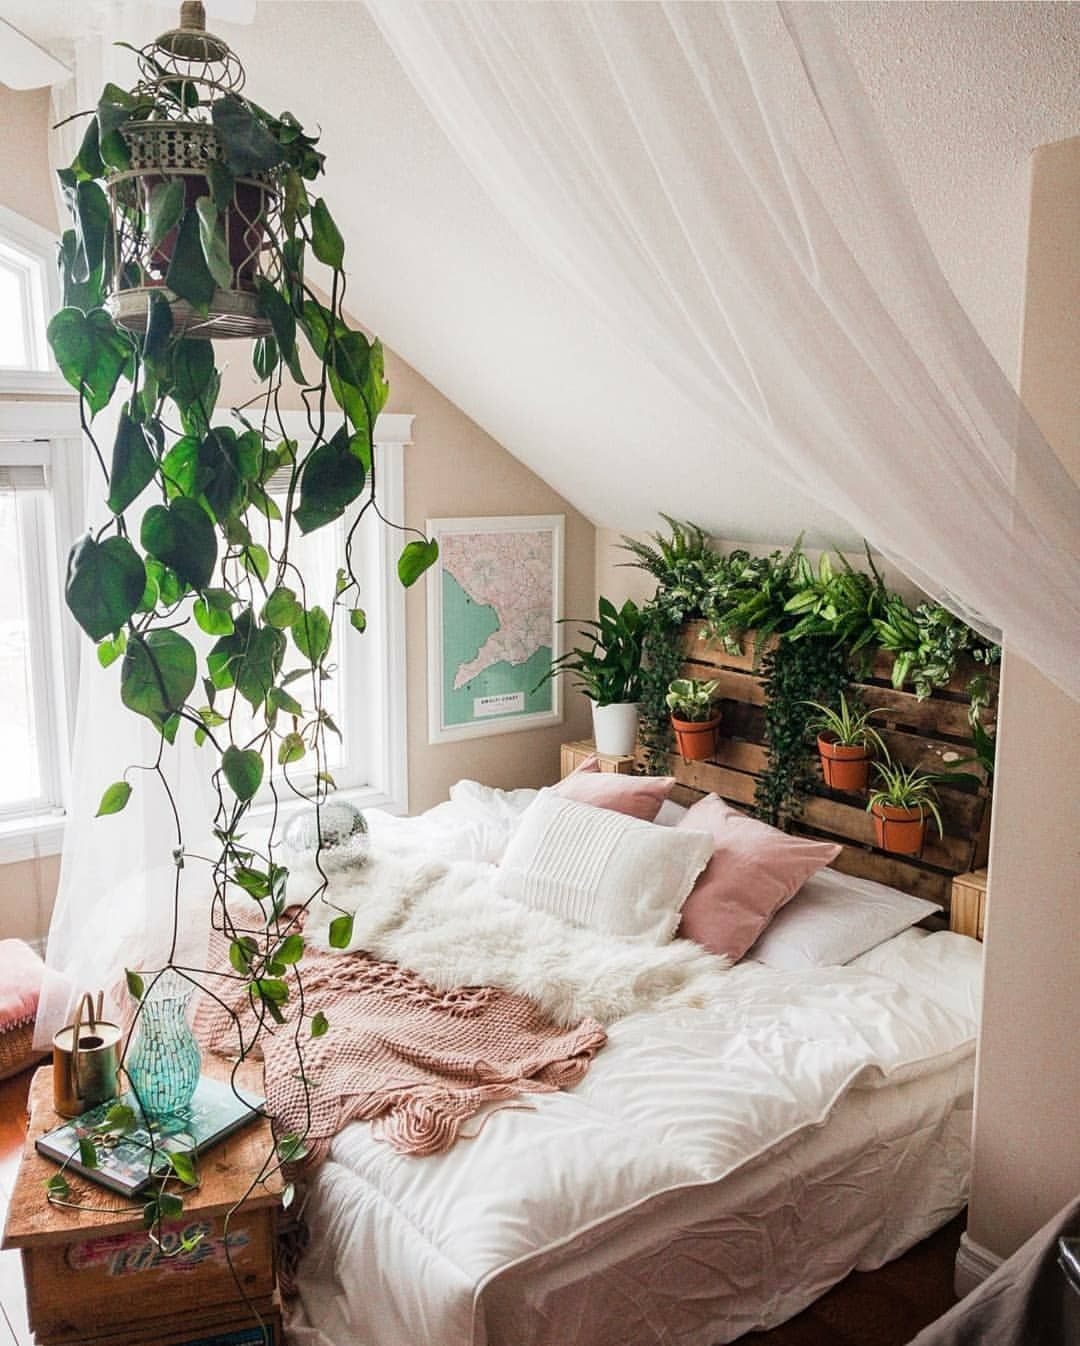 "Gefällt 16.6 Tsd. Mal, 188 Kommentare - Urban Jungle Bloggers™ (@urbanjungleblog) auf Instagram: ""Night night Philodendron, sweet dreams Chlorophytum, sleepy tight Aglaonema!"